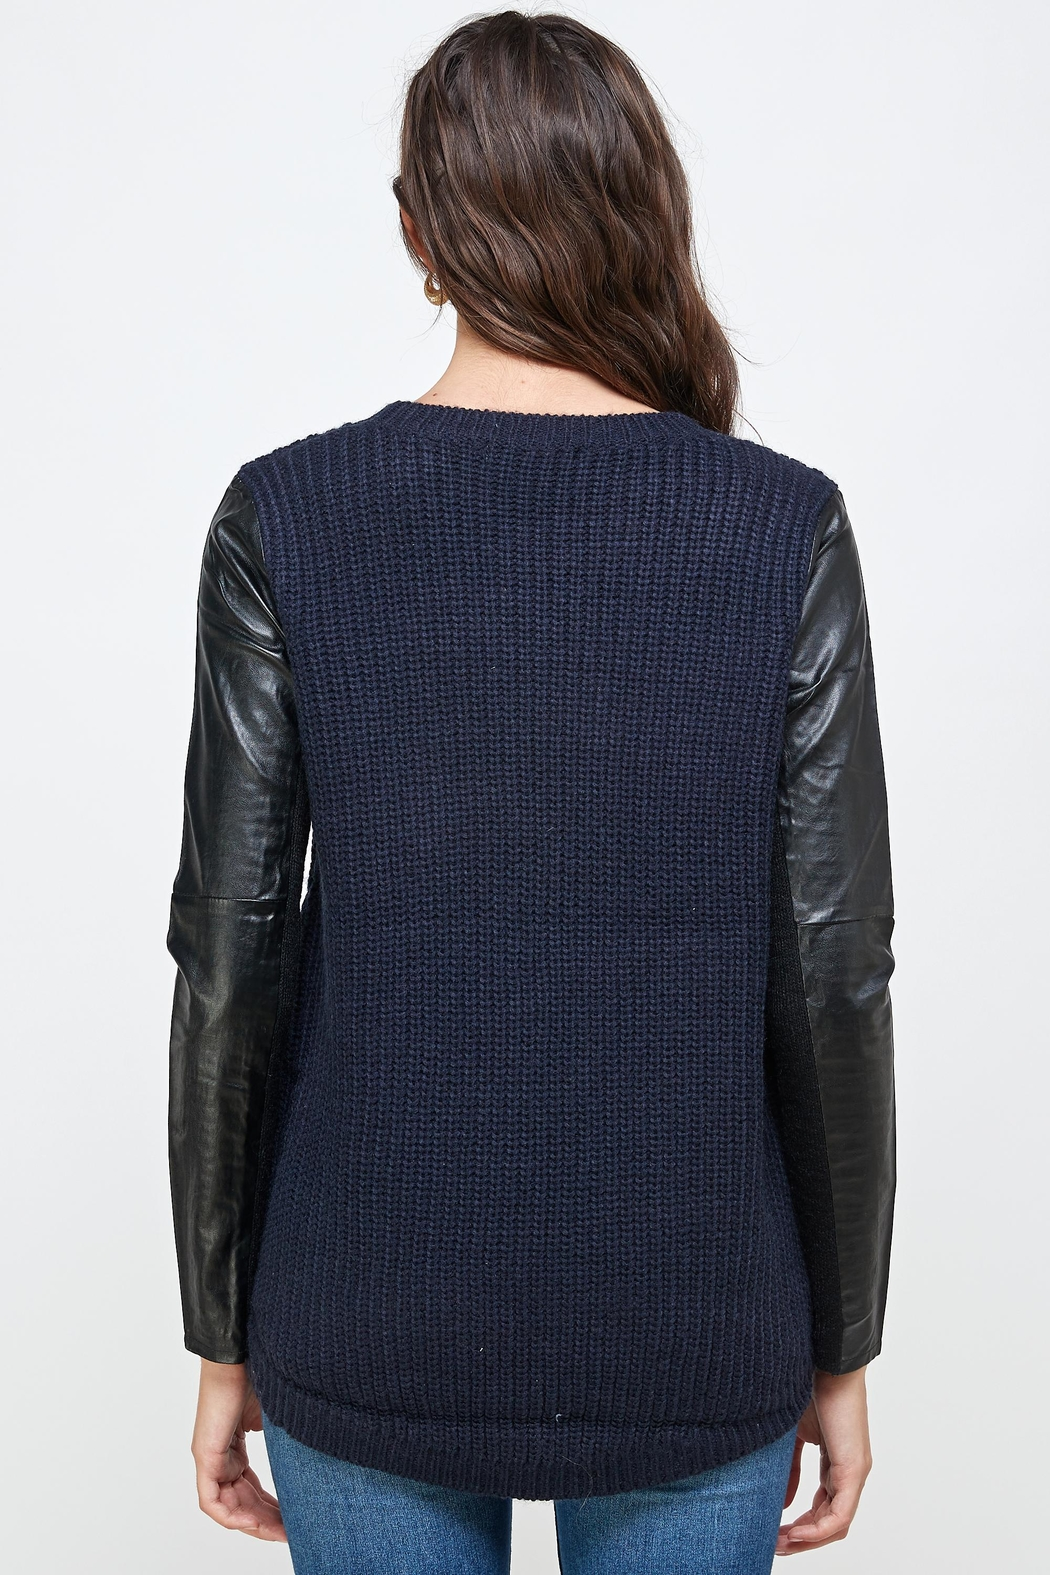 Kaii Vegan Leather Sweater High Low Top - Back Cropped Image